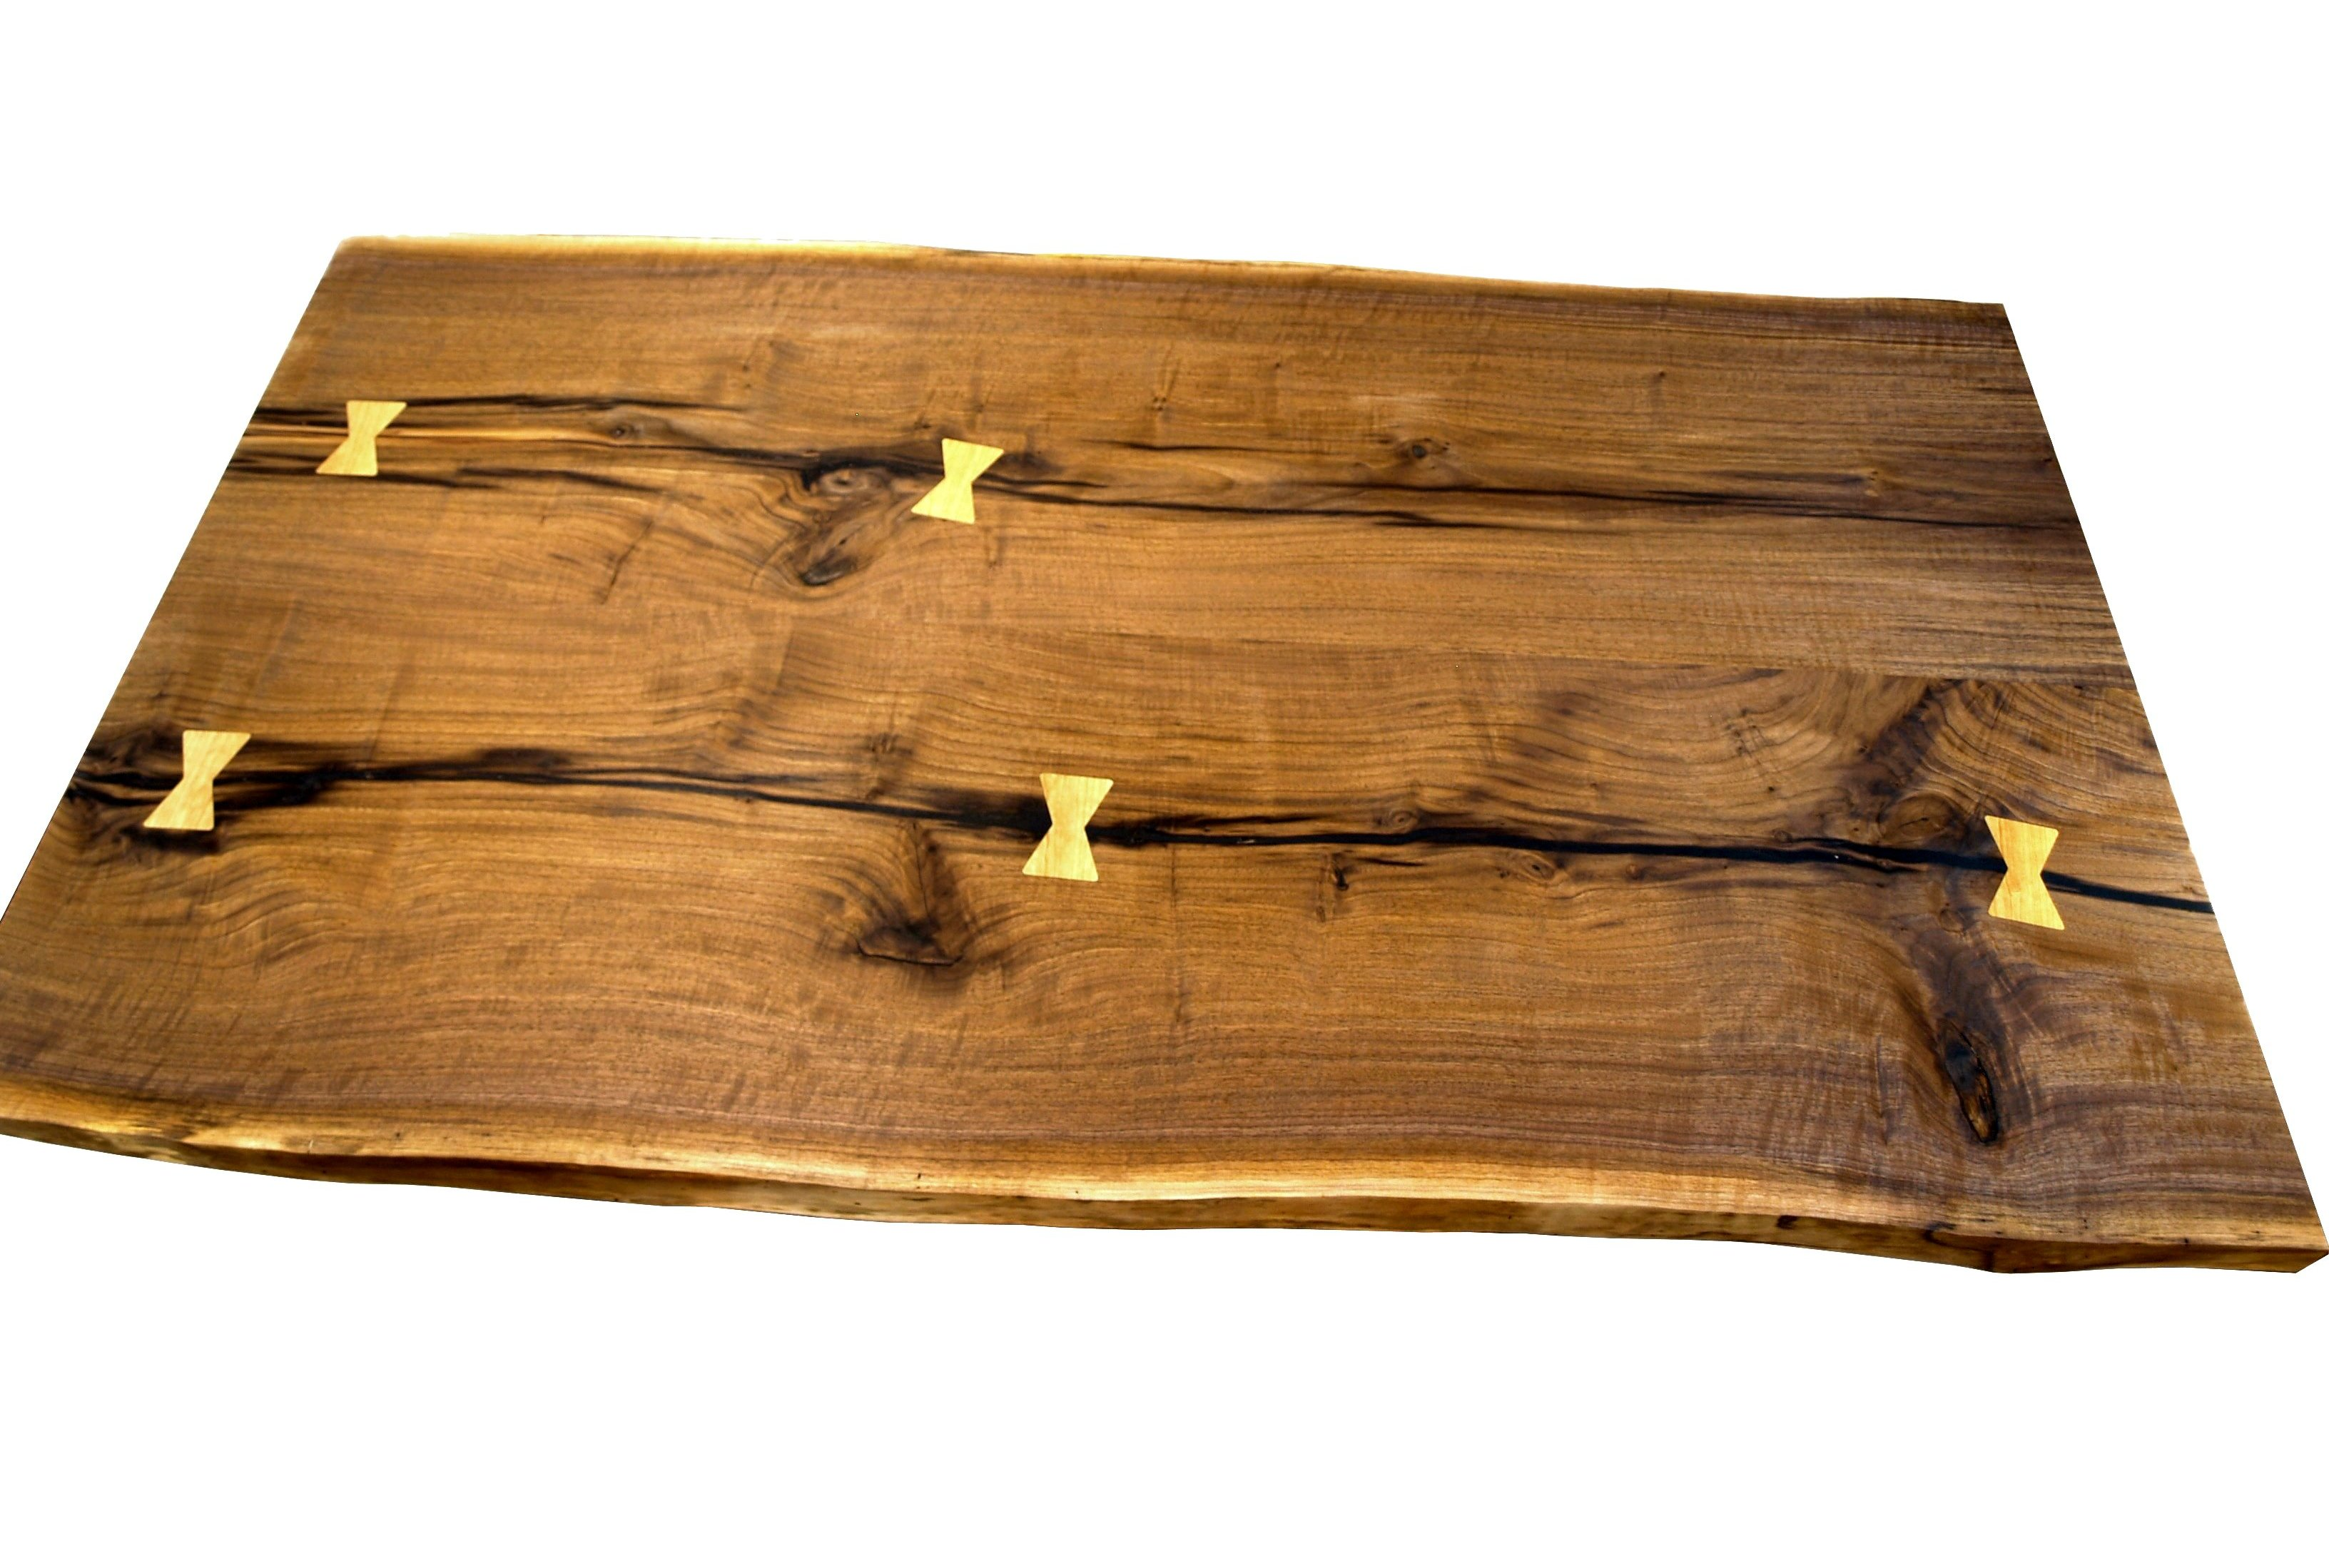 Custom Walnut Slab Table Top With Maple Butterfly Inlays. Constructed From  One Long Slab Cut